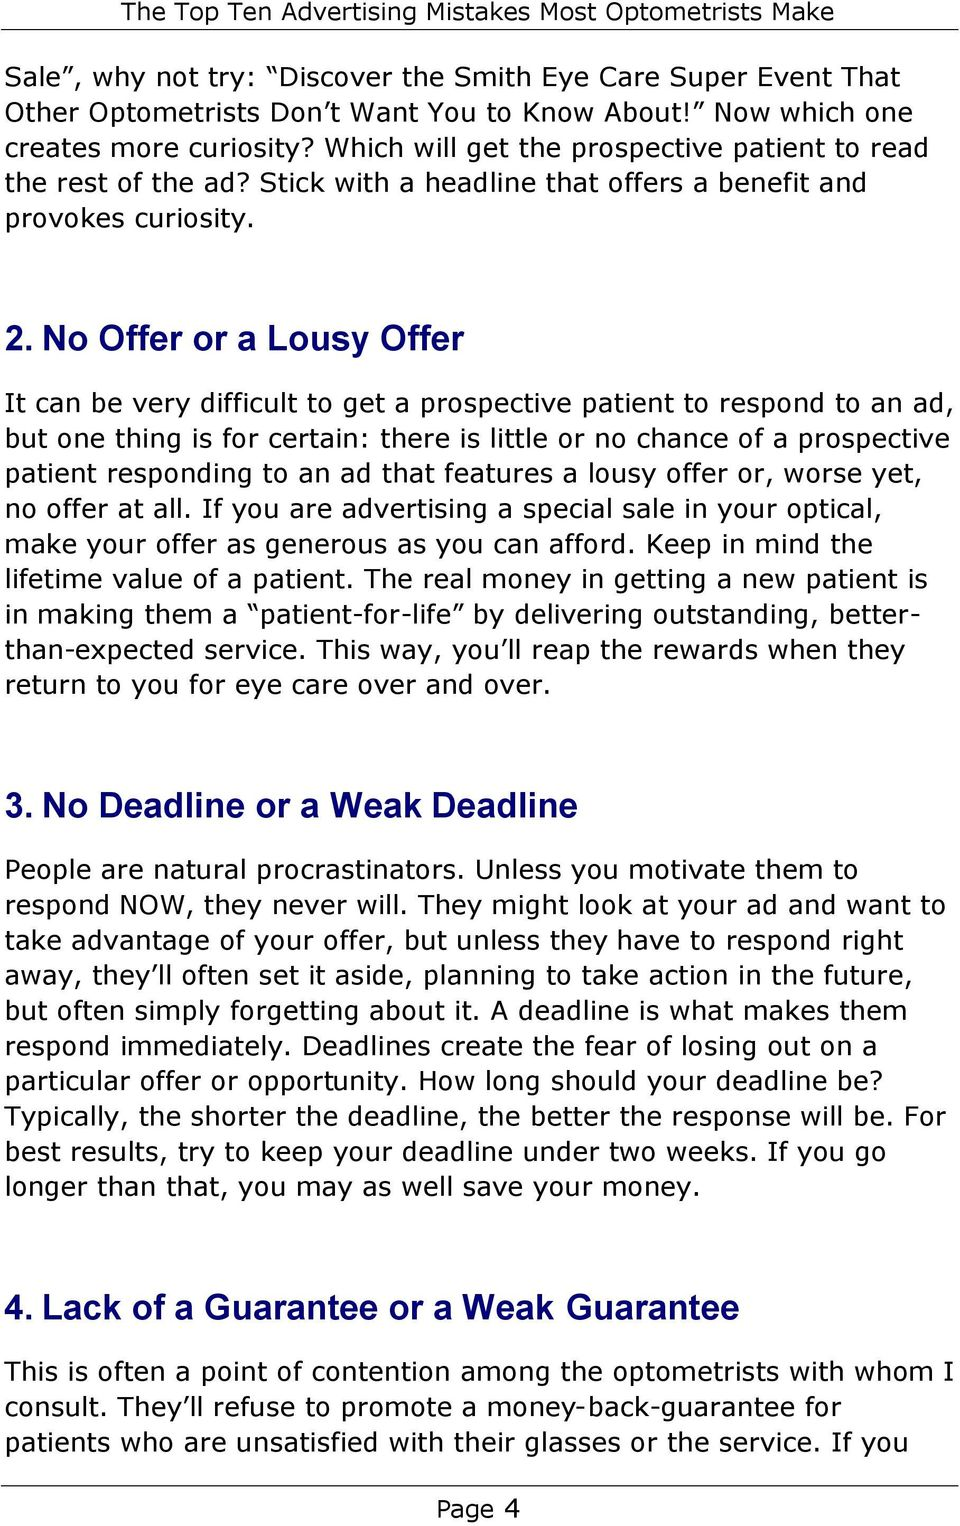 No Offer or a Lousy Offer It can be very difficult to get a prospective patient to respond to an ad, but one thing is for certain: there is little or no chance of a prospective patient responding to